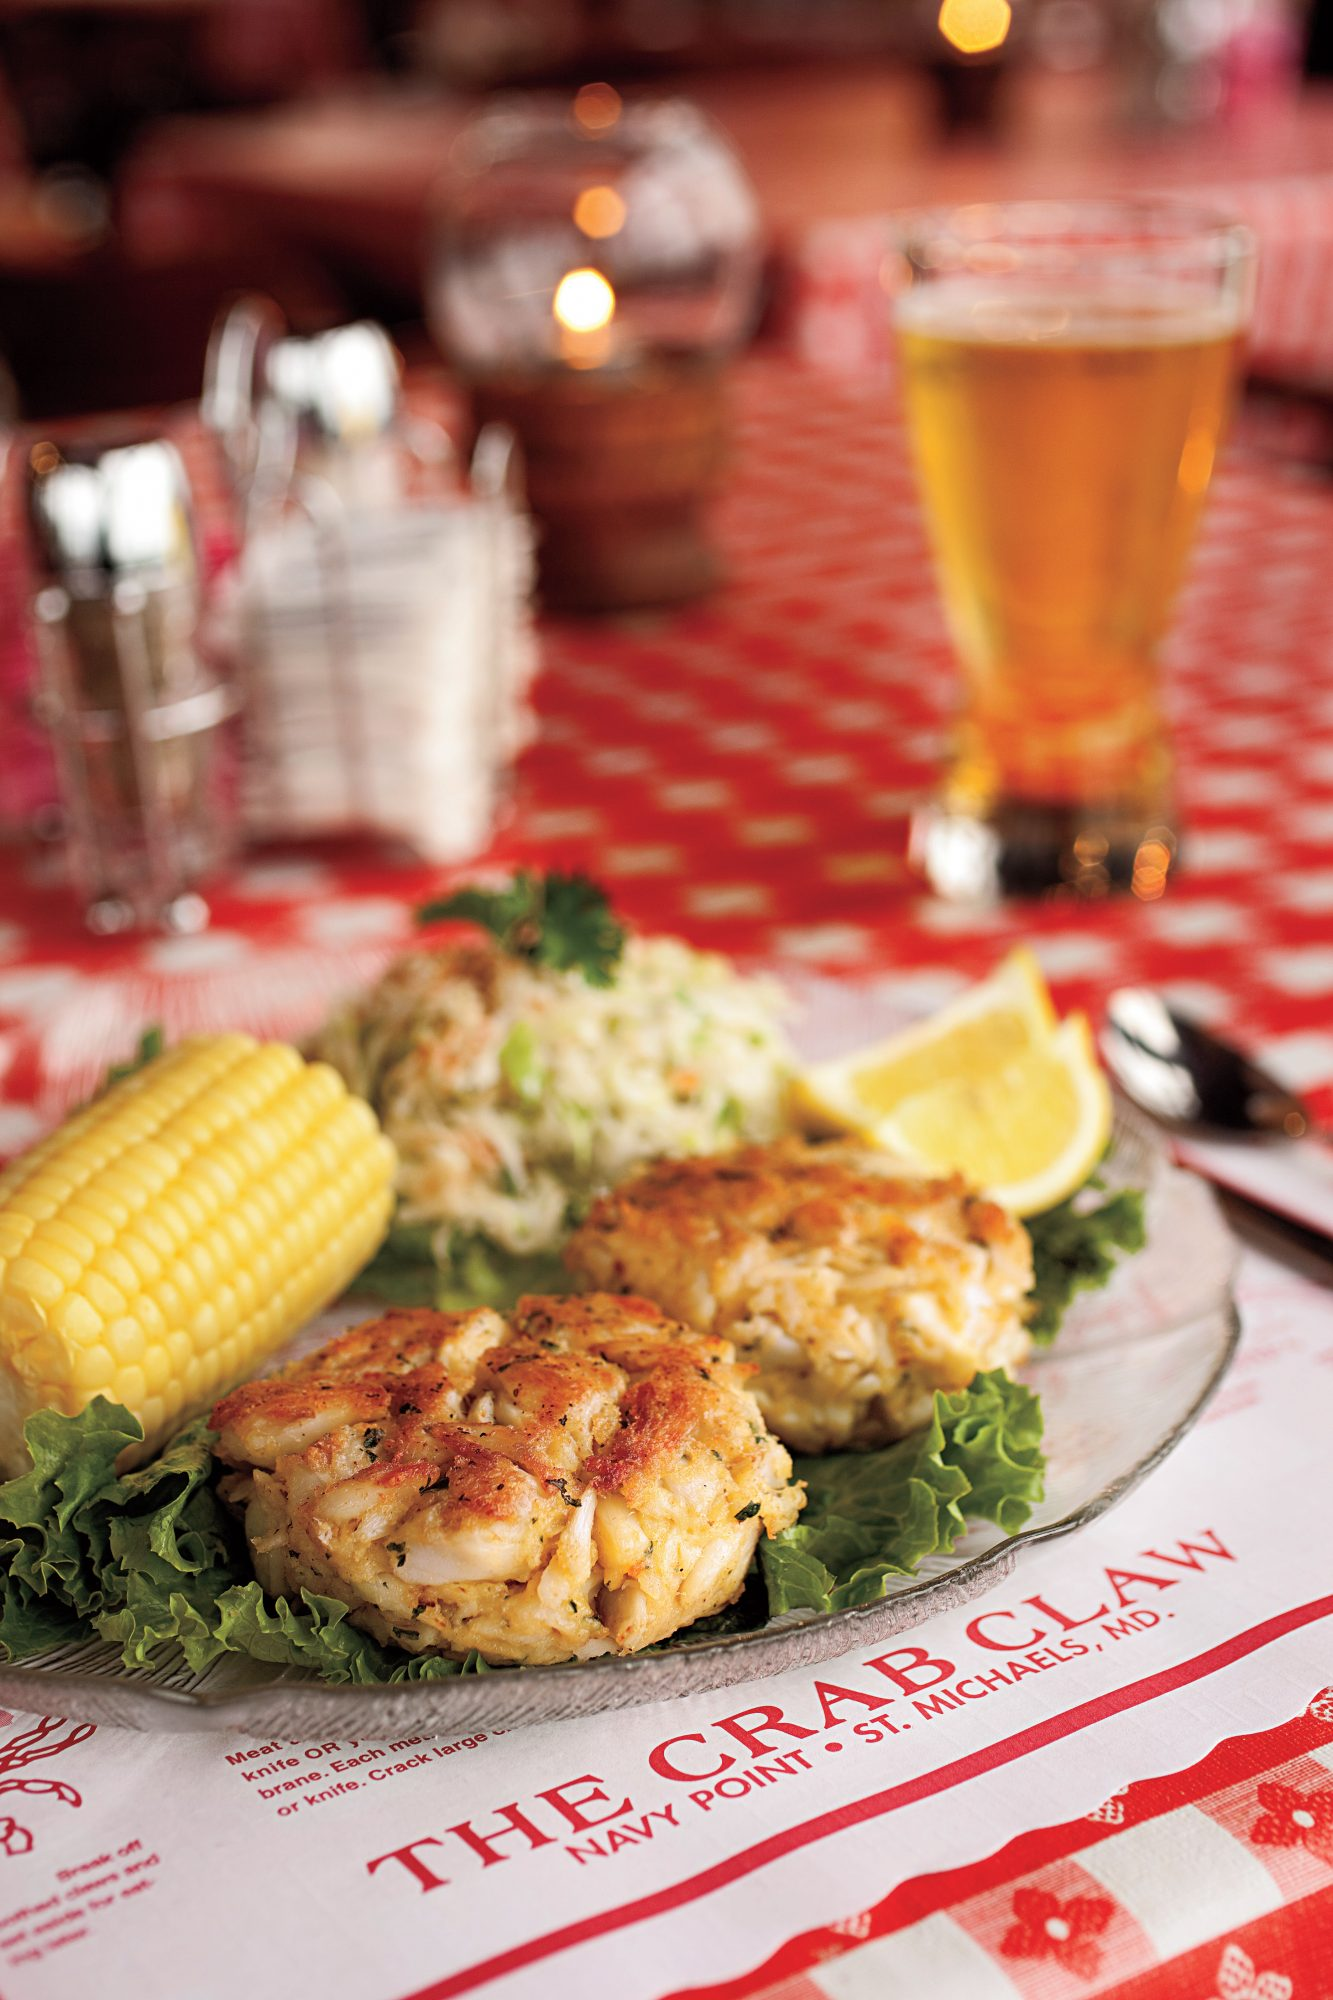 Best Southern Travel Destinations: The Crab Claw